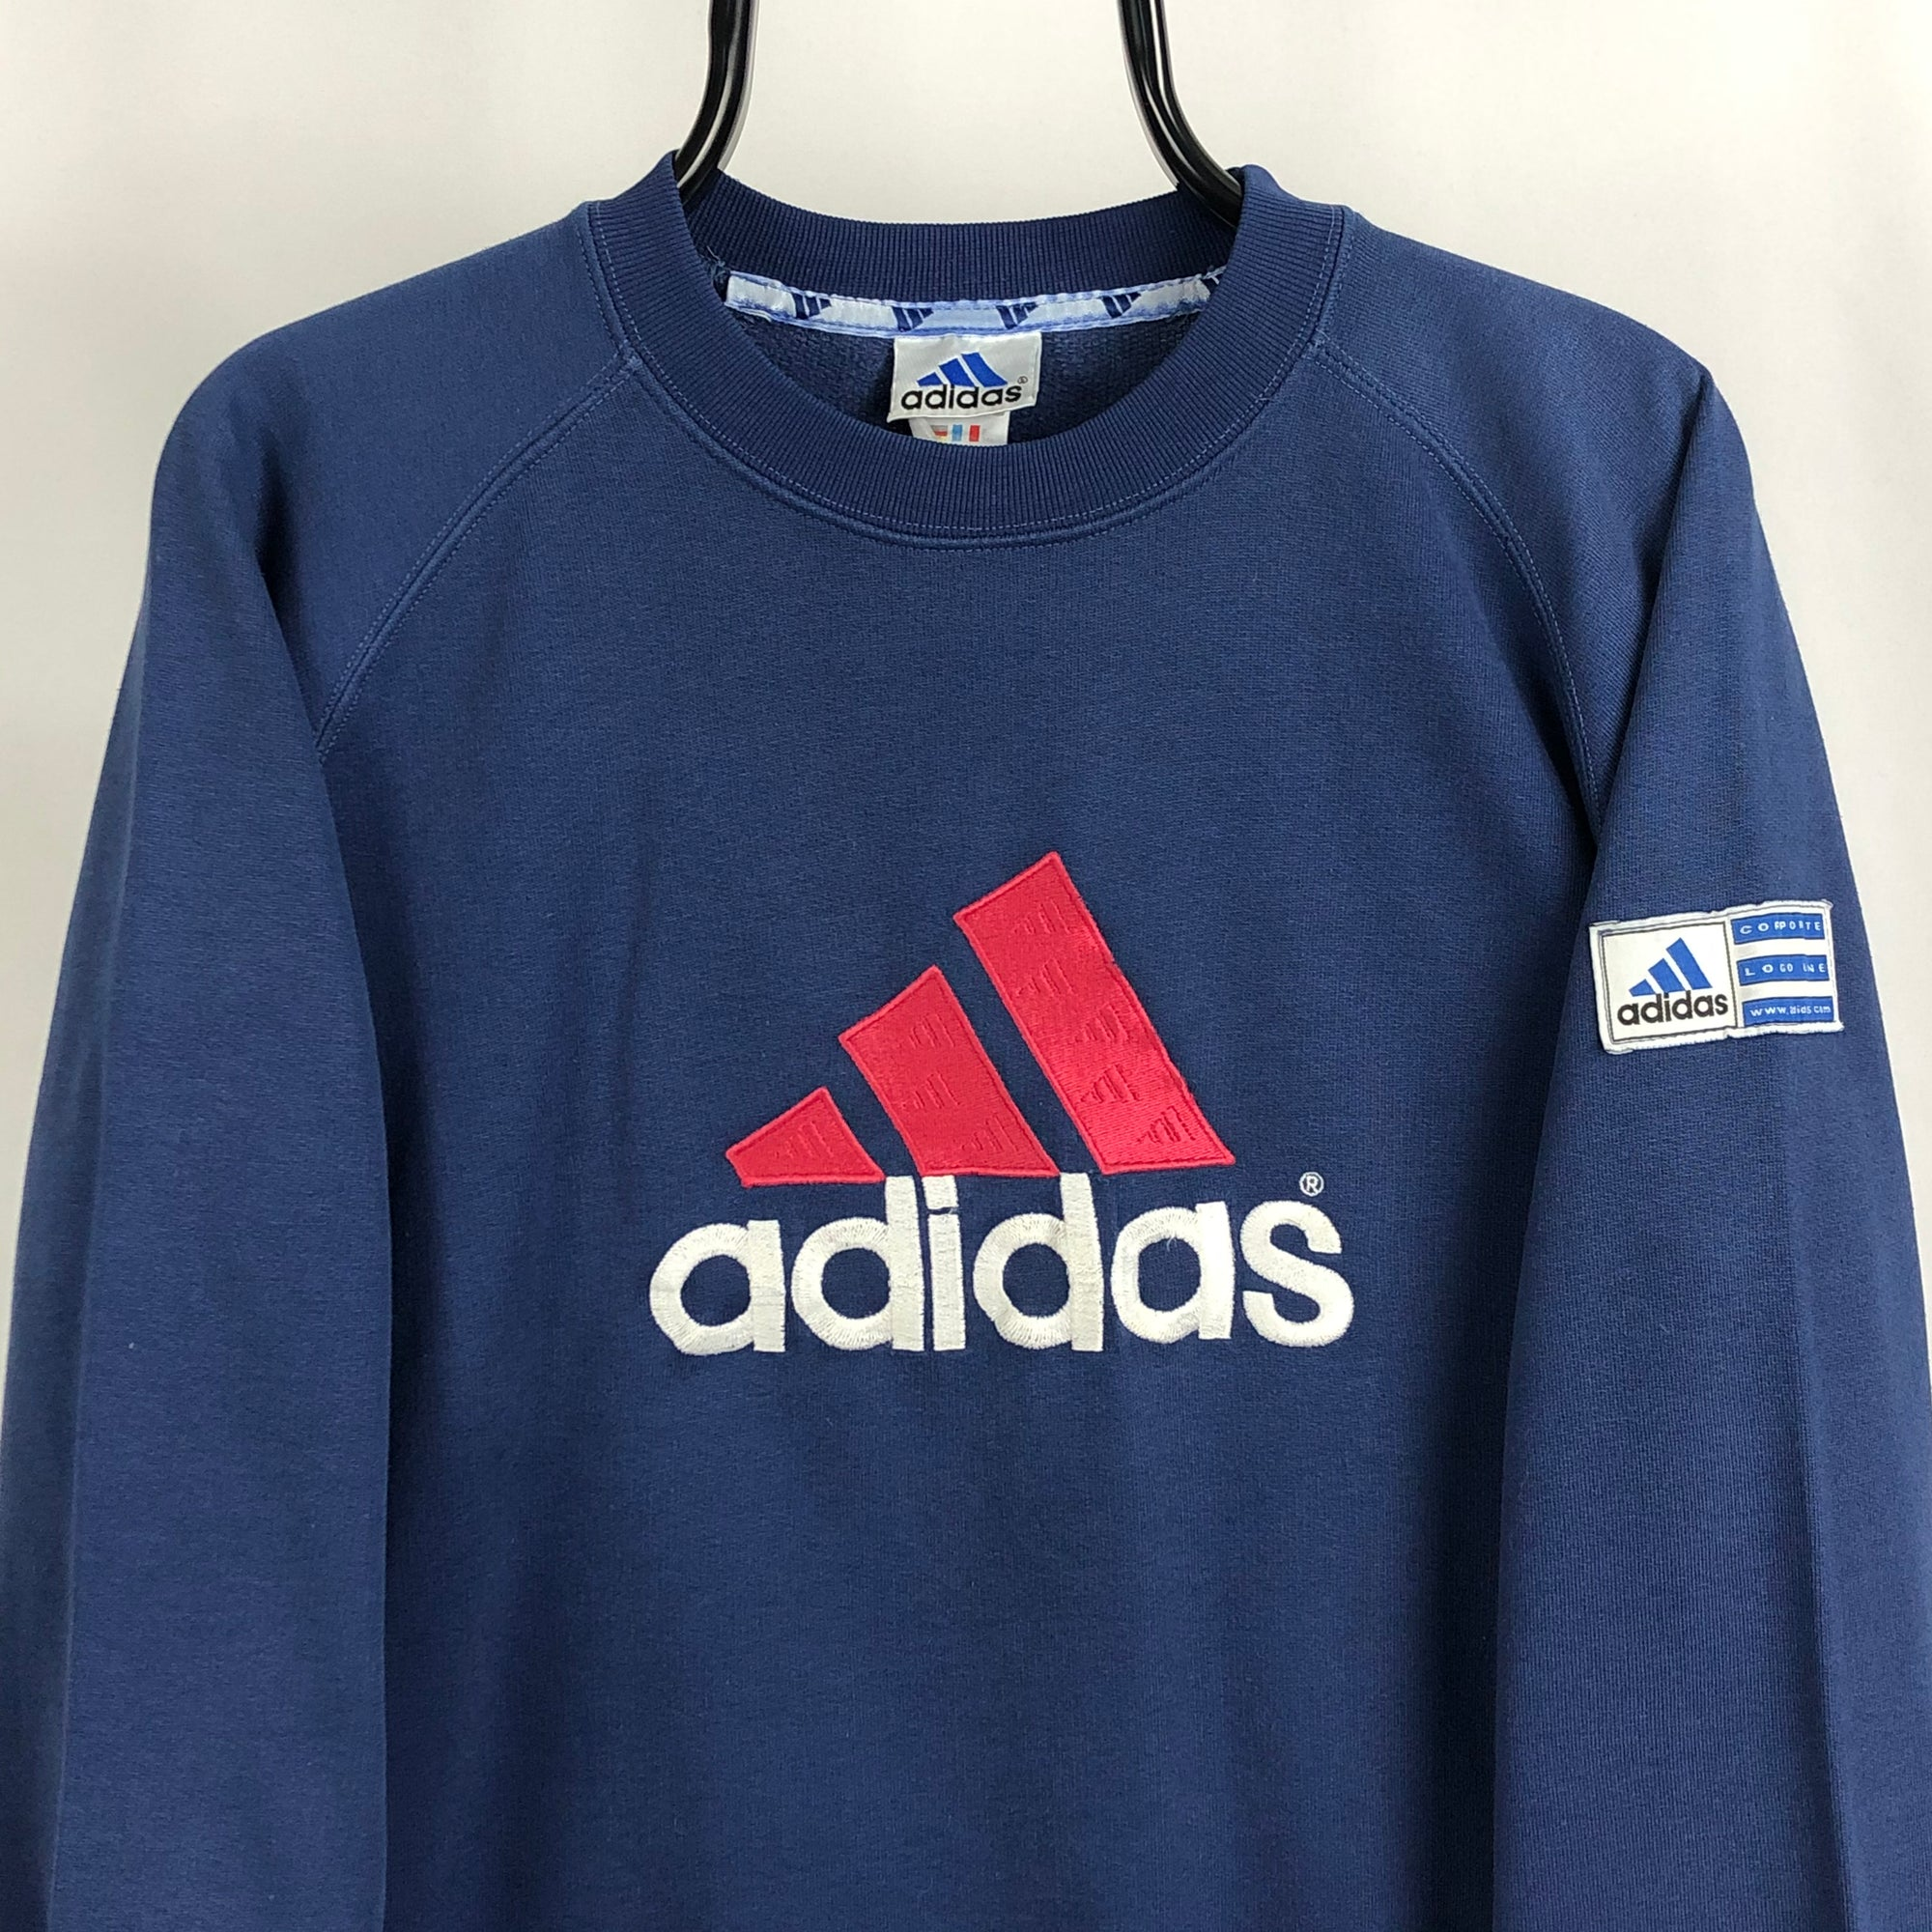 Vintage 90s Adidas Spellout Sweatshirt in Navy/Red - Men's Small/Women's Medium